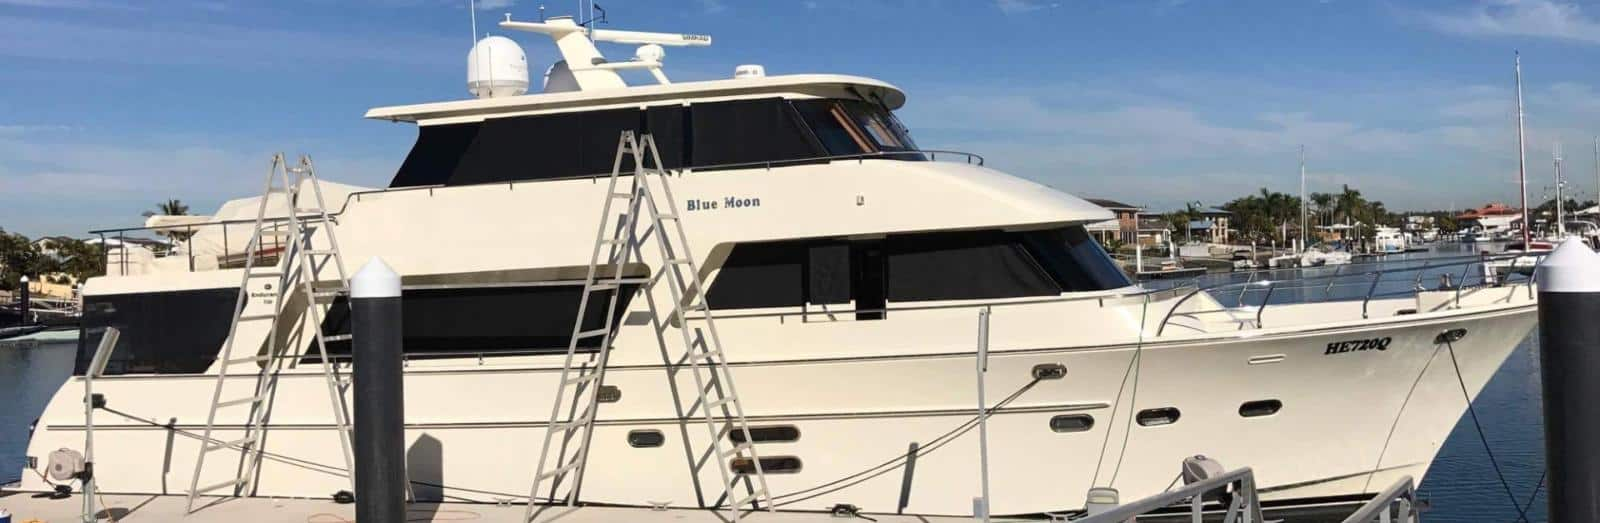 Professional Boat Detailers based in Manly The Boat Care Company services the Manly, Gold Coast, Brisbane and the Sunshine Coast